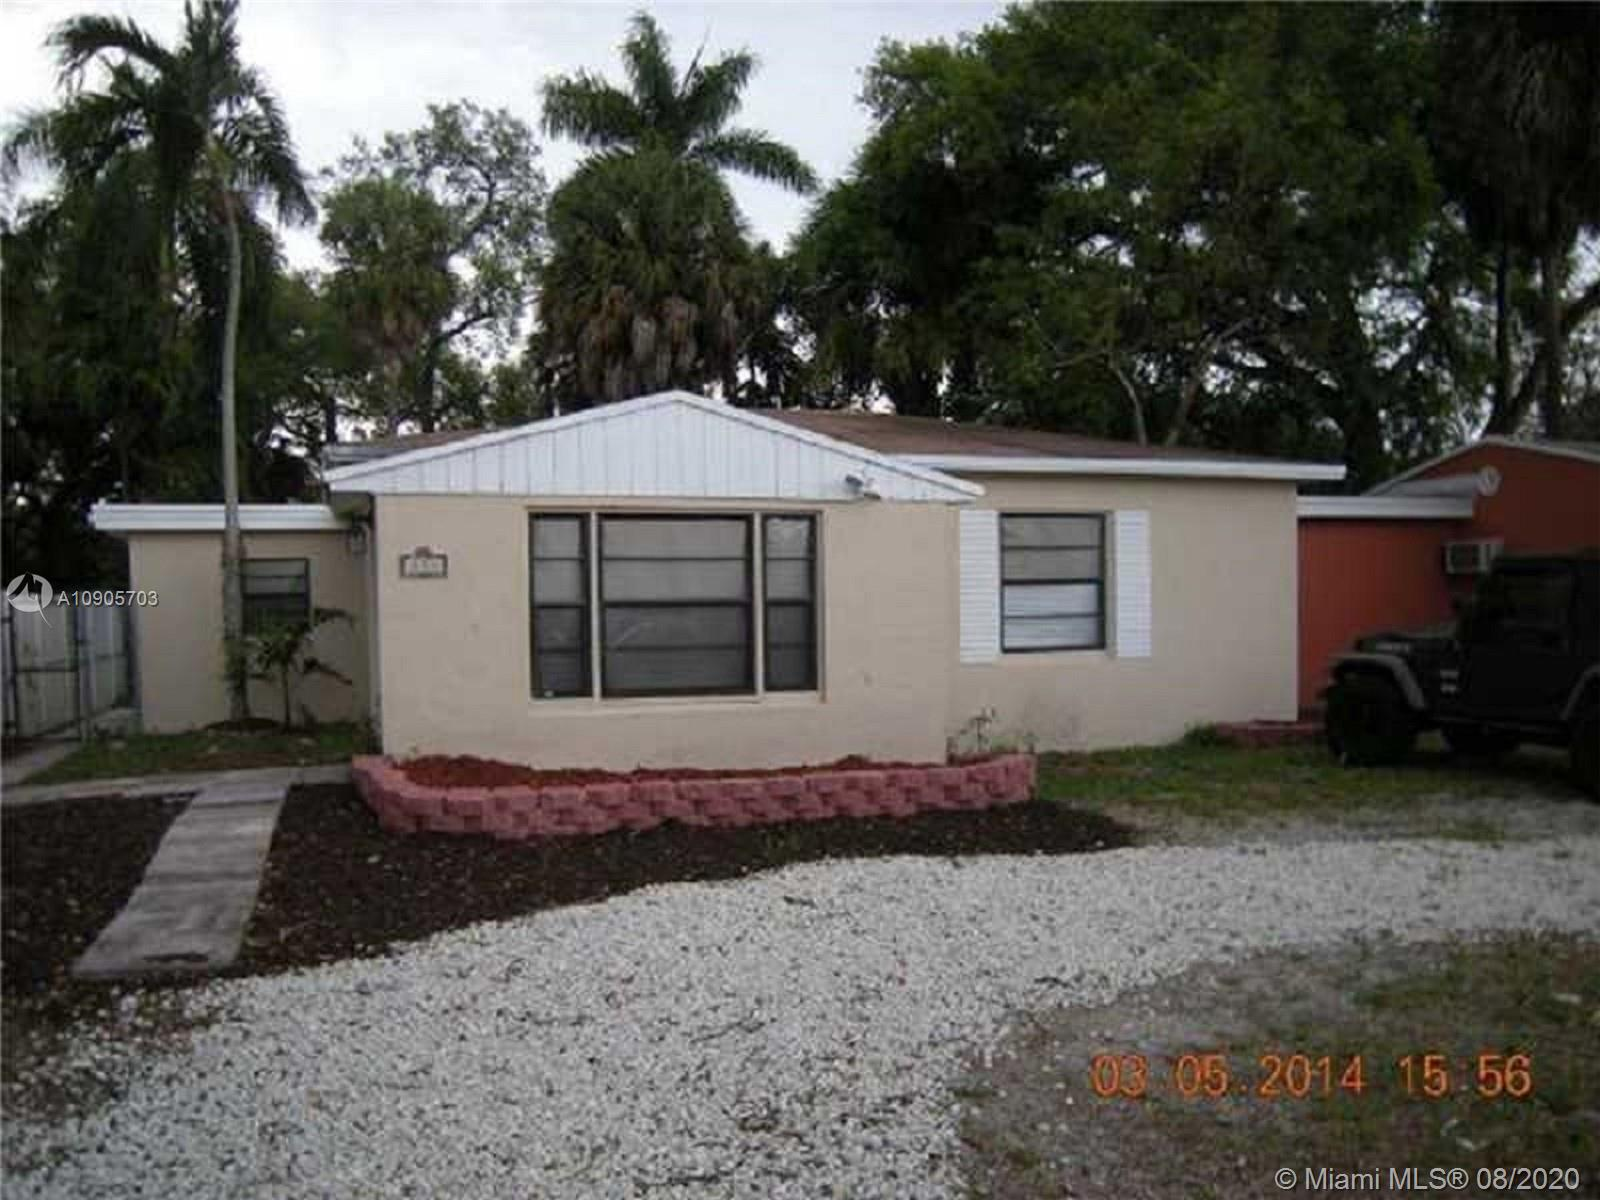 great house all remodel located in a great area big back yard need new roof  estimated 12.000   will be install soon